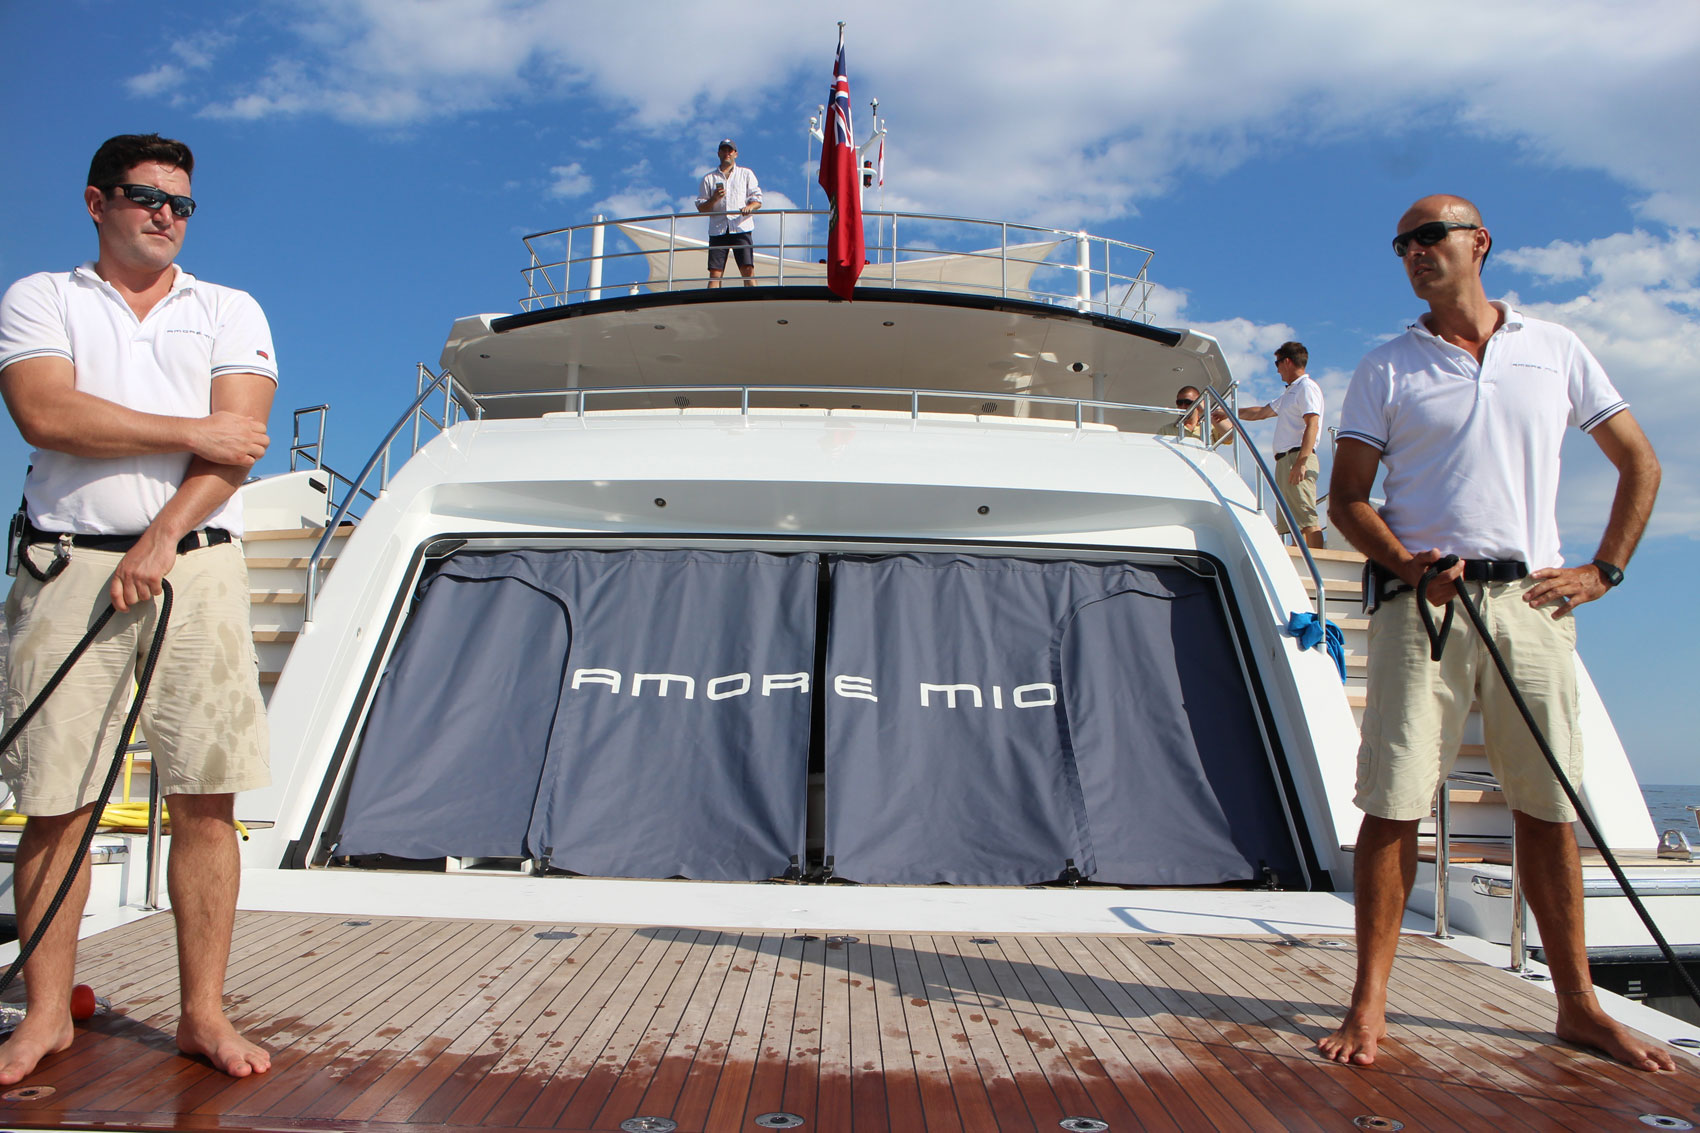 Luxurious Magazine Dives Into The Heart Of The Amore Mio Superyacht 6